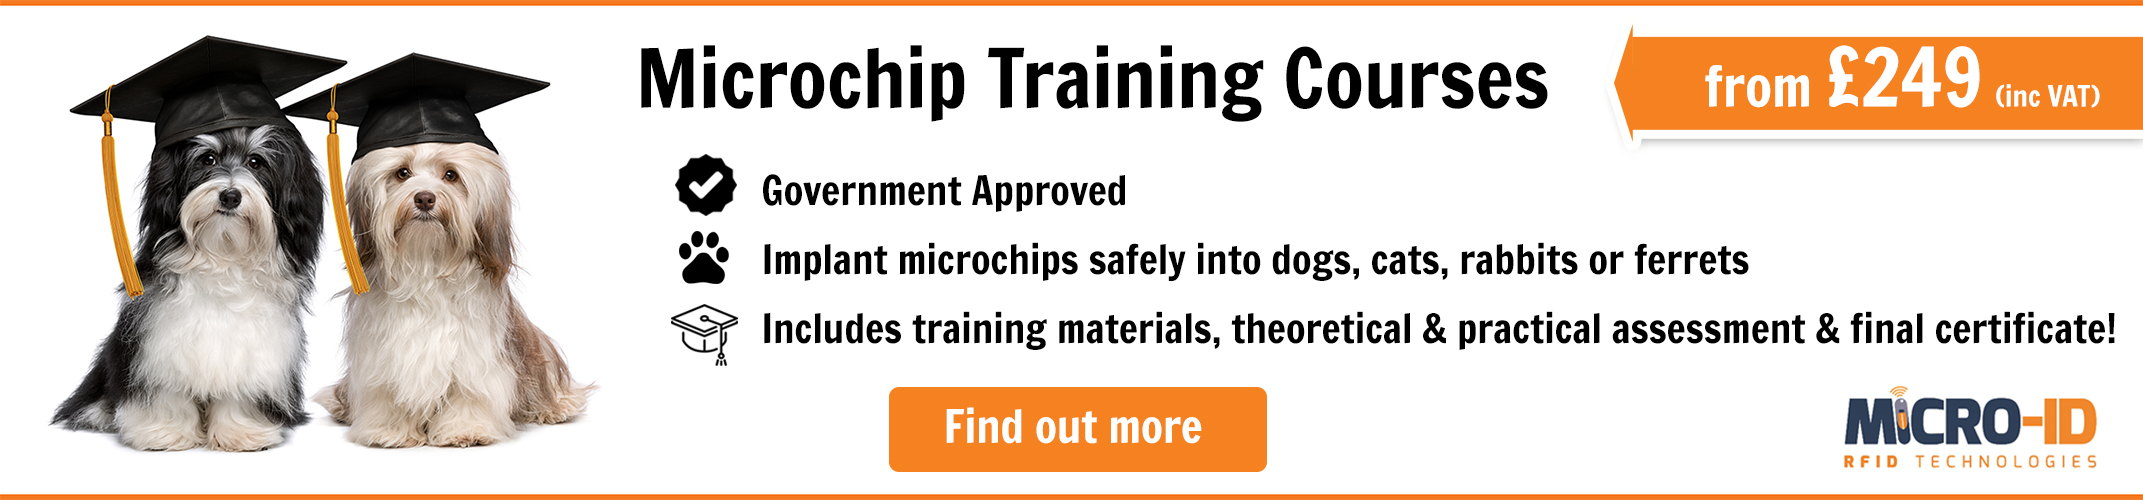 Microchip Implanting Training